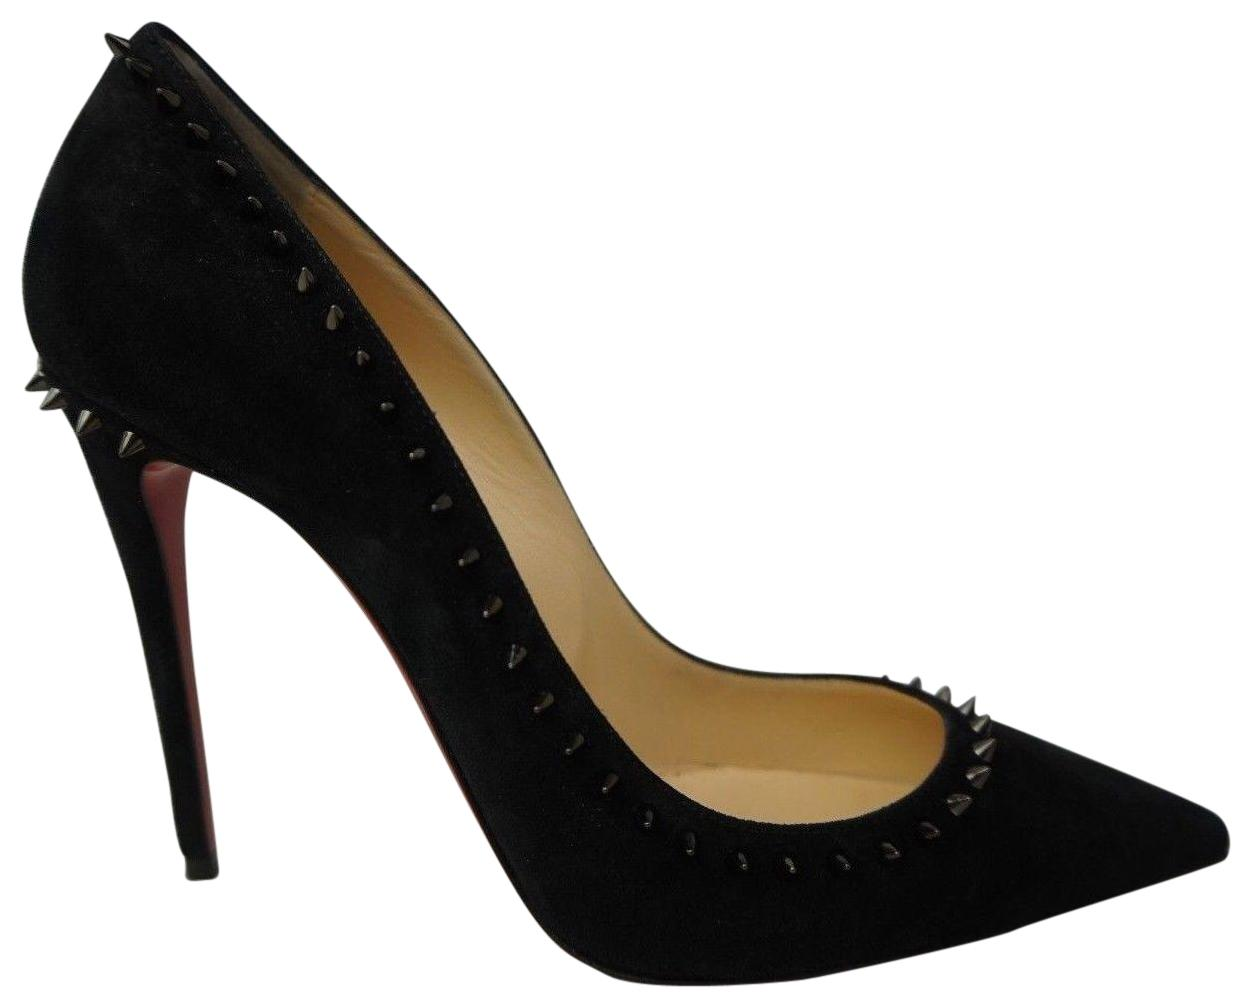 Christian Louboutin Black Anjalina Suede Pumps Size EU 39 (Approx. US 9) Regular (M, B)